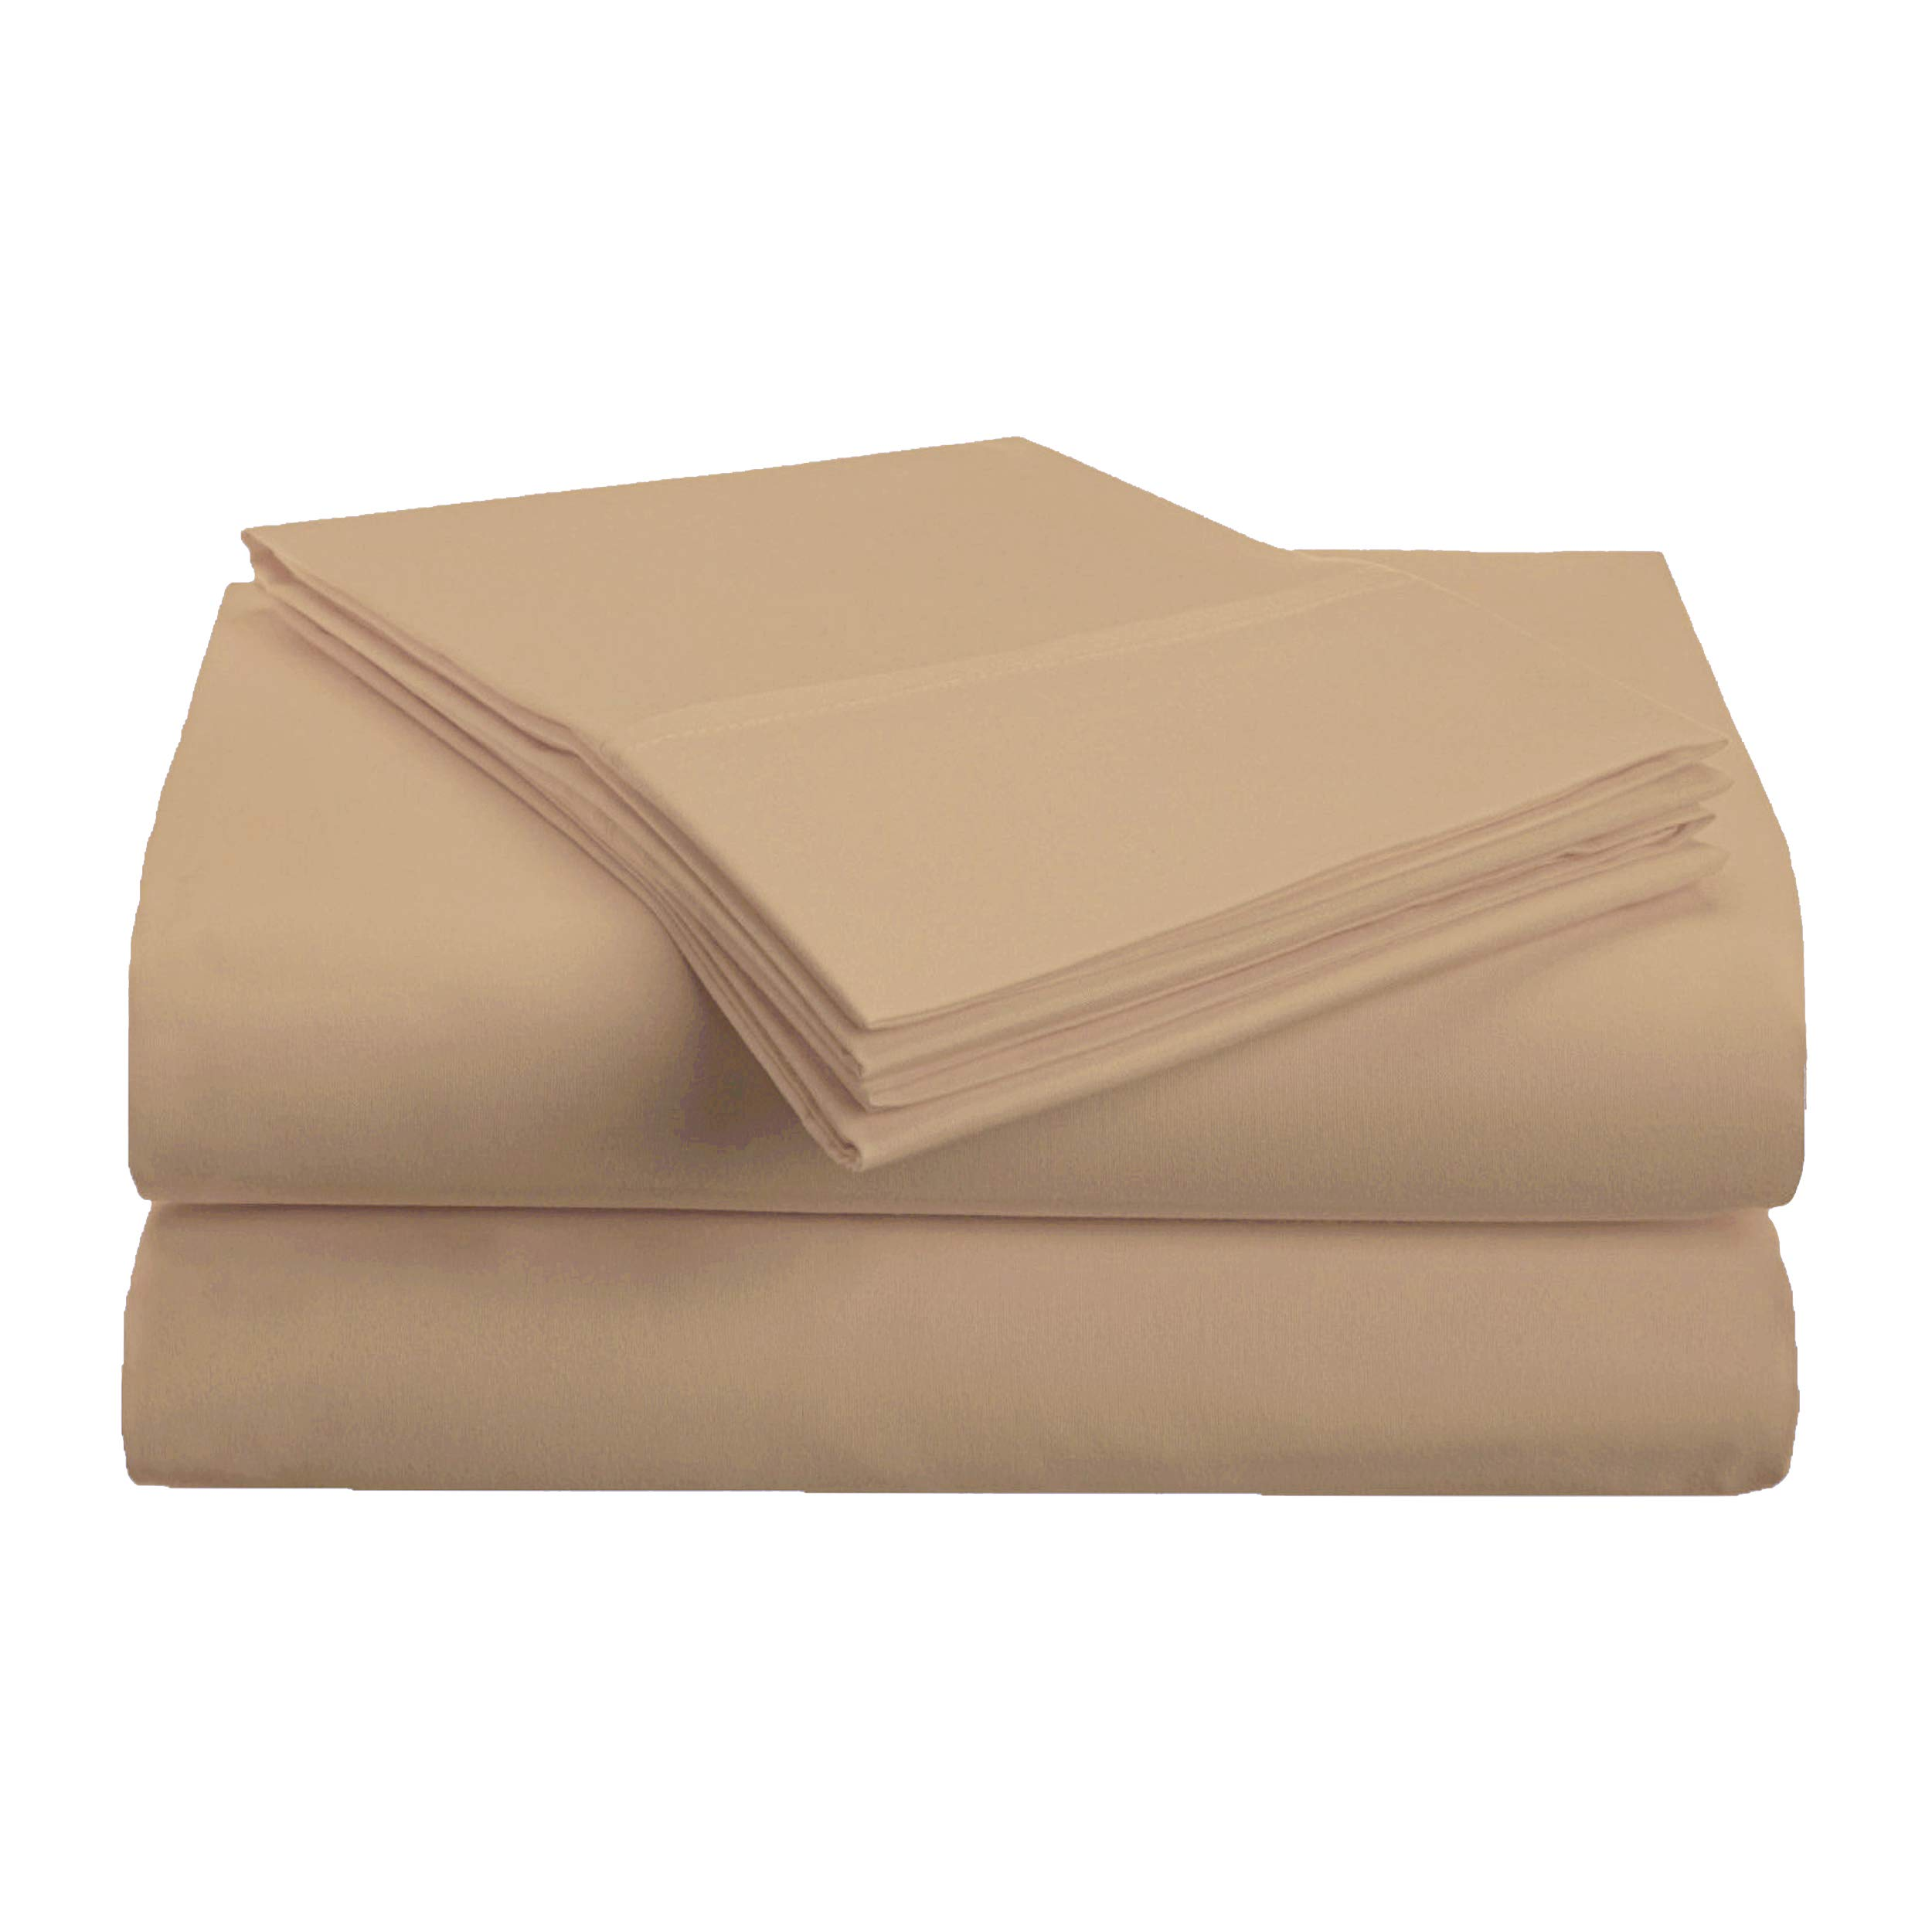 Superior 1500 Series Premium Quality 100% Brushed Soft Microfiber 3-Piece Luxury Deep Pocket Cooling Bed Sheet Set, Hypoallergenic, Wrinkle and Stain Resistant - Twin XL, Taupe